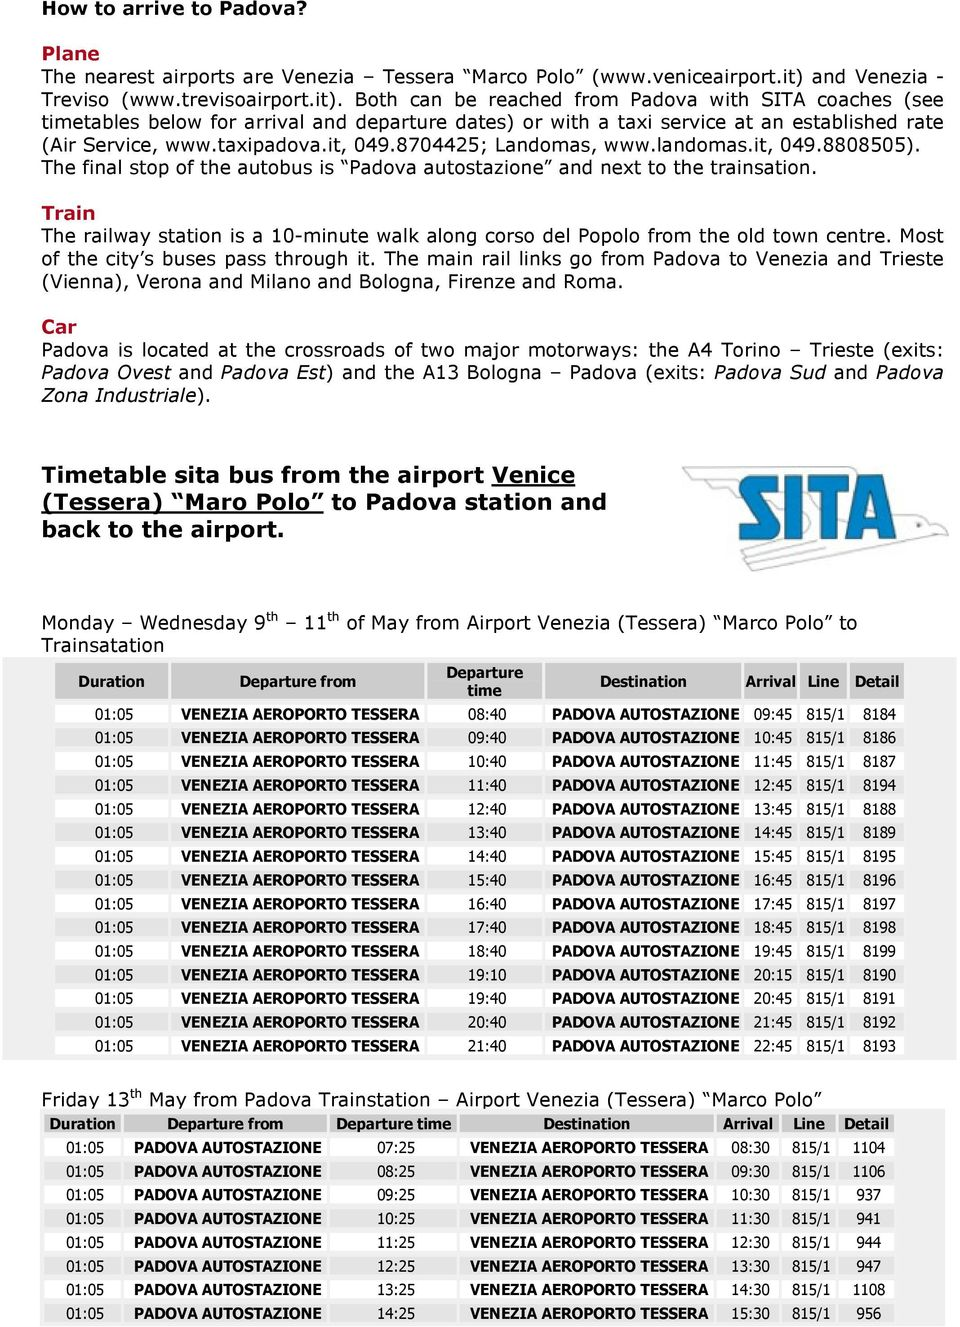 Both can be reached from Padova with SITA coaches (see timetables below for arrival and departure dates) or with a taxi service at an established rate (Air Service, www.taxipadova.it, 049.